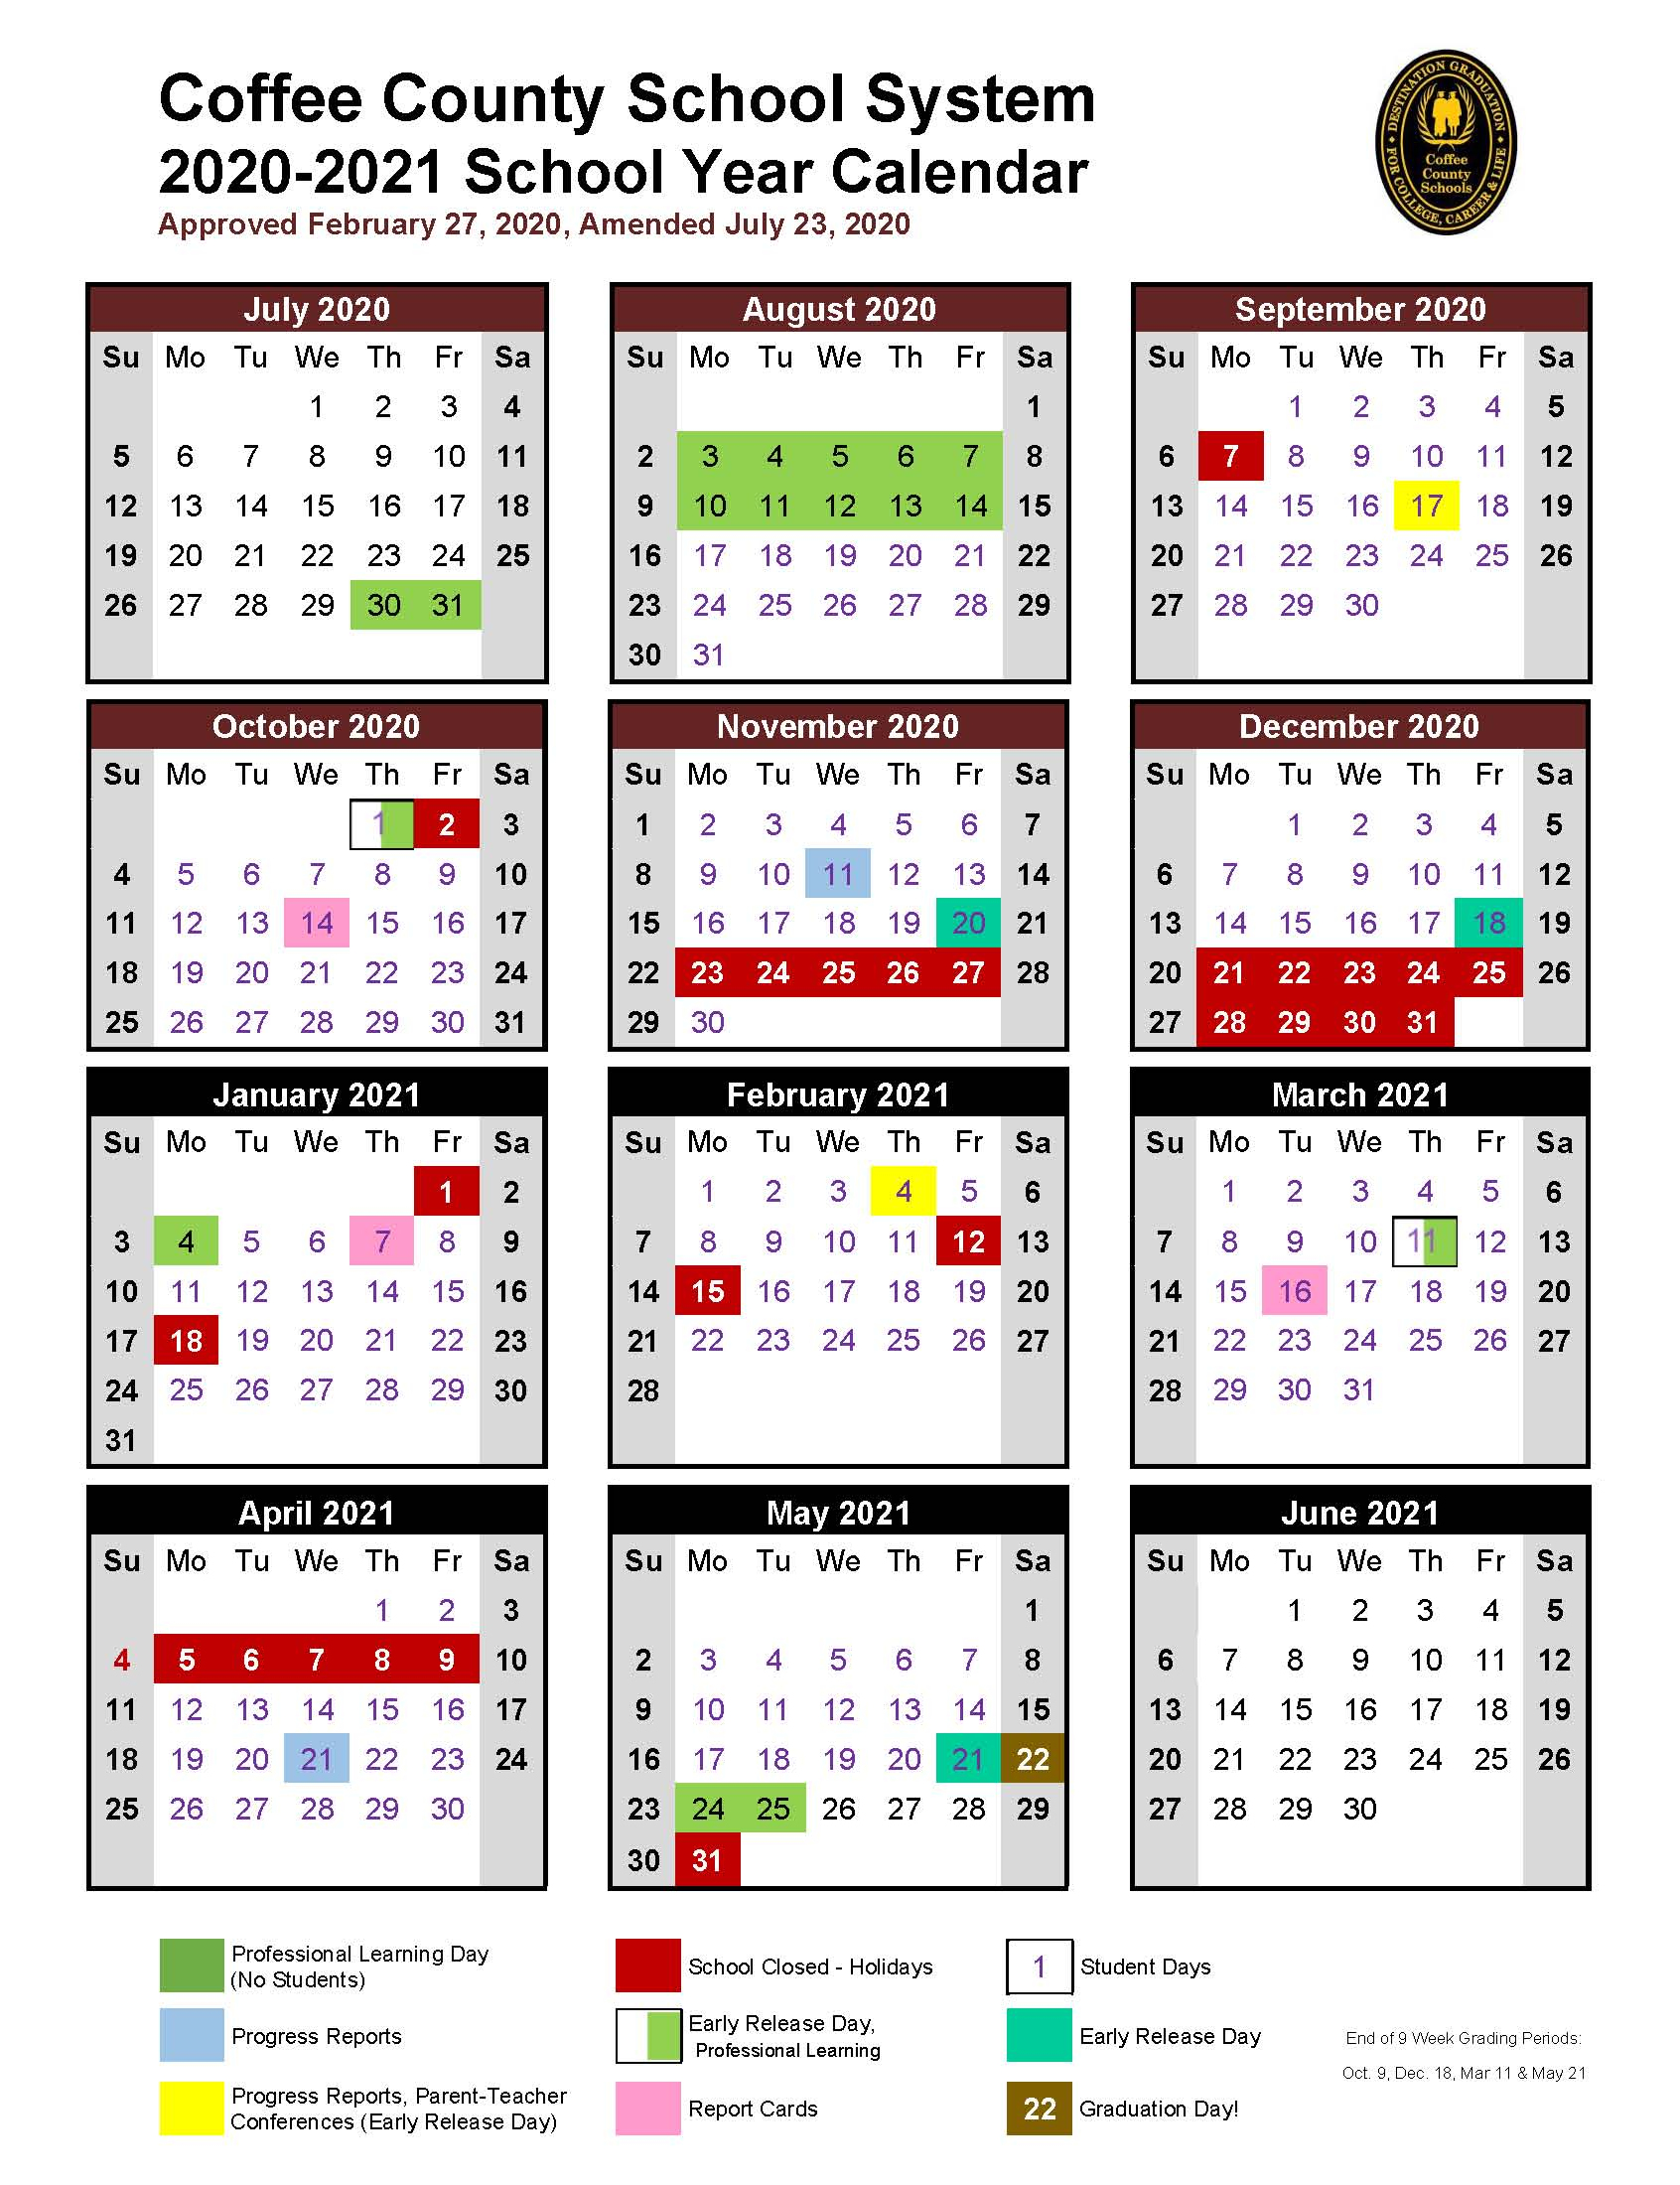 Douglas County School Calendar 2021 Coffee County School System: 2020 2021 School Calendar